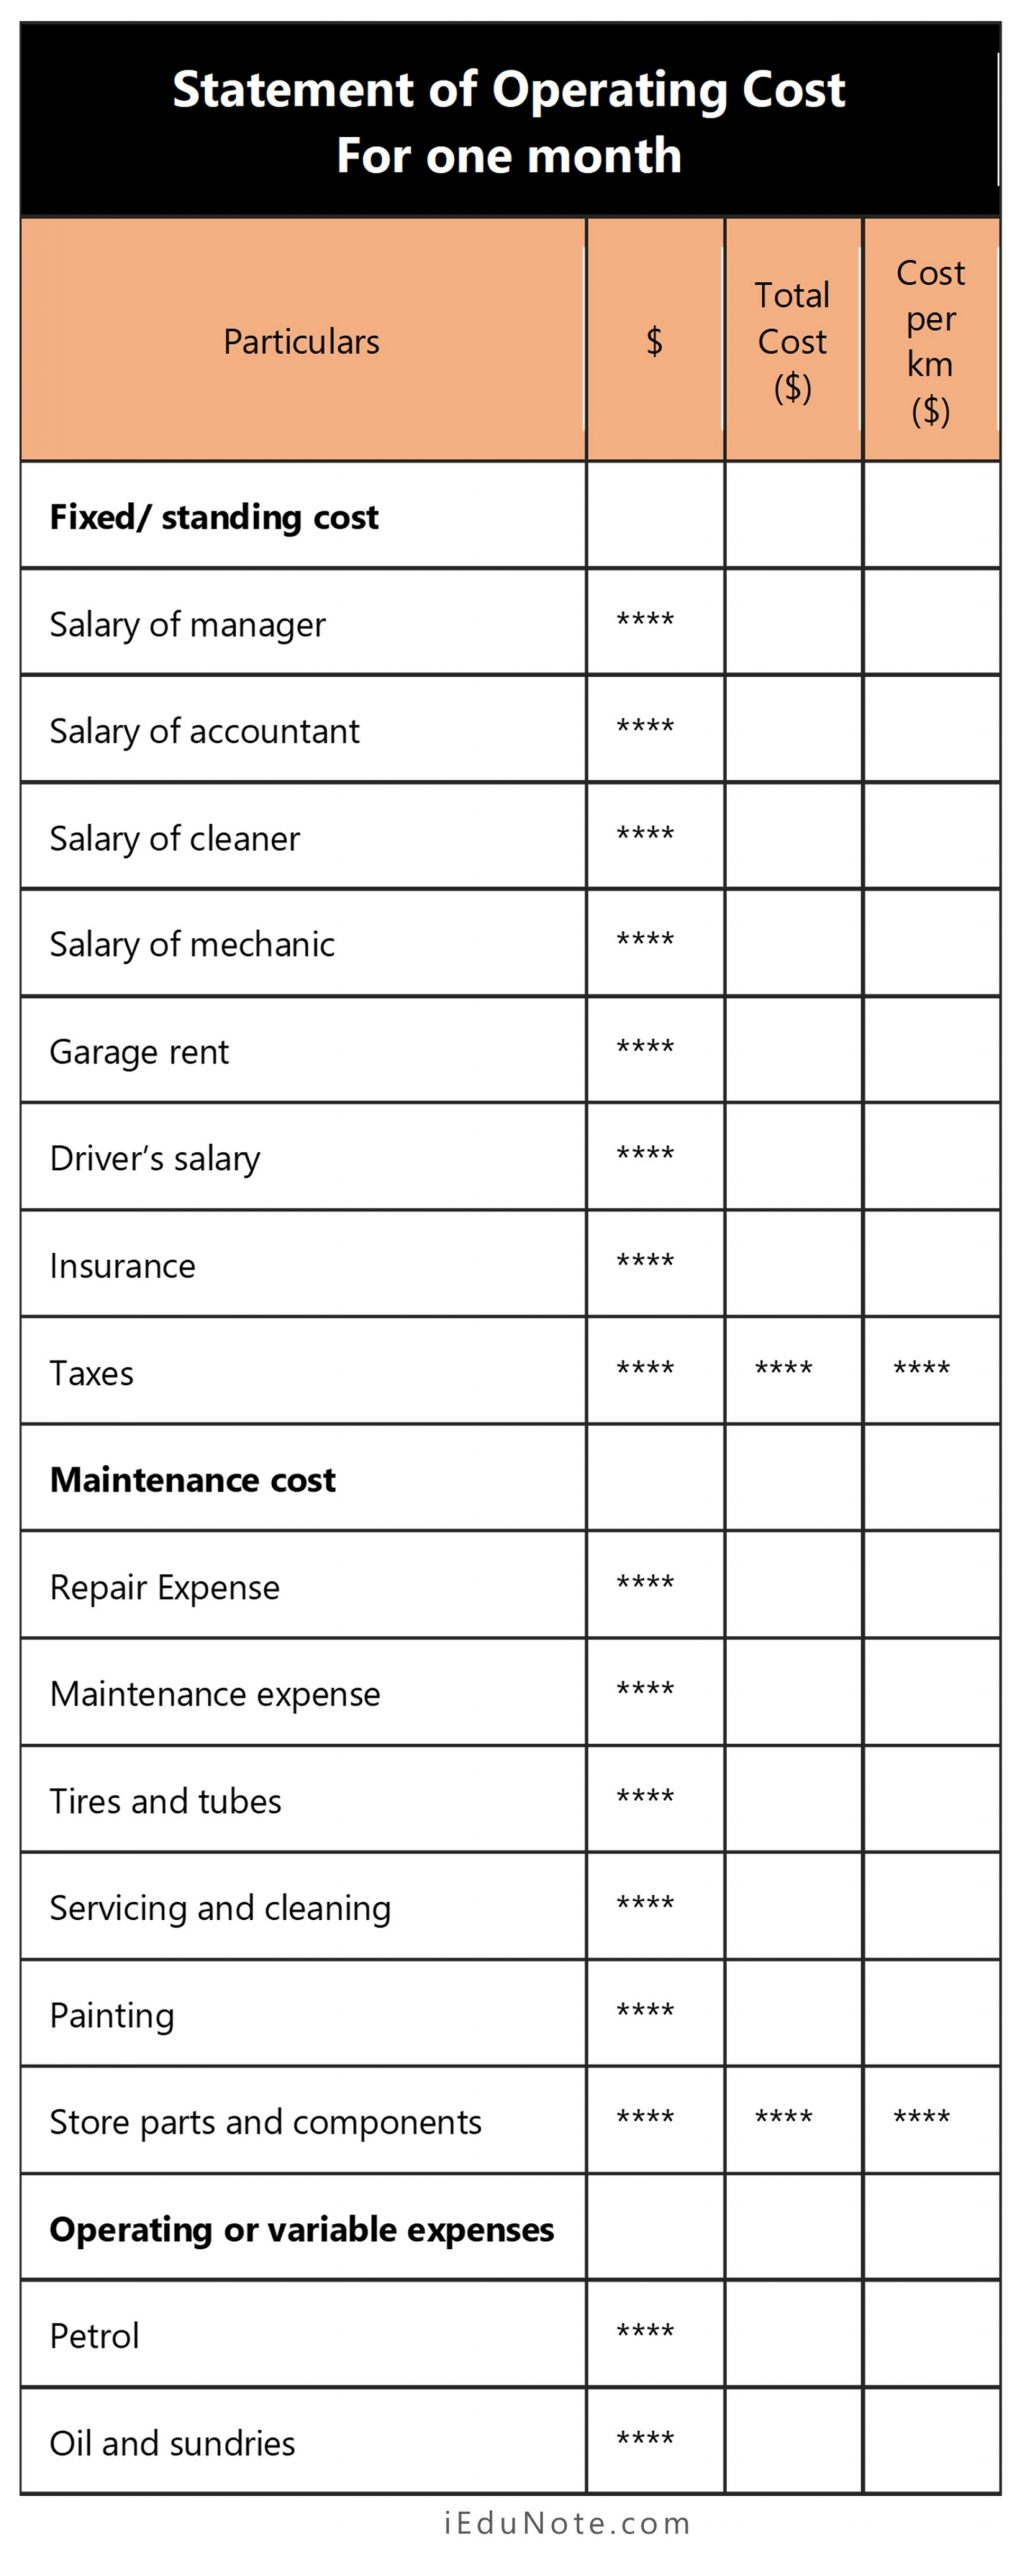 Format of Statement of Operating Cost